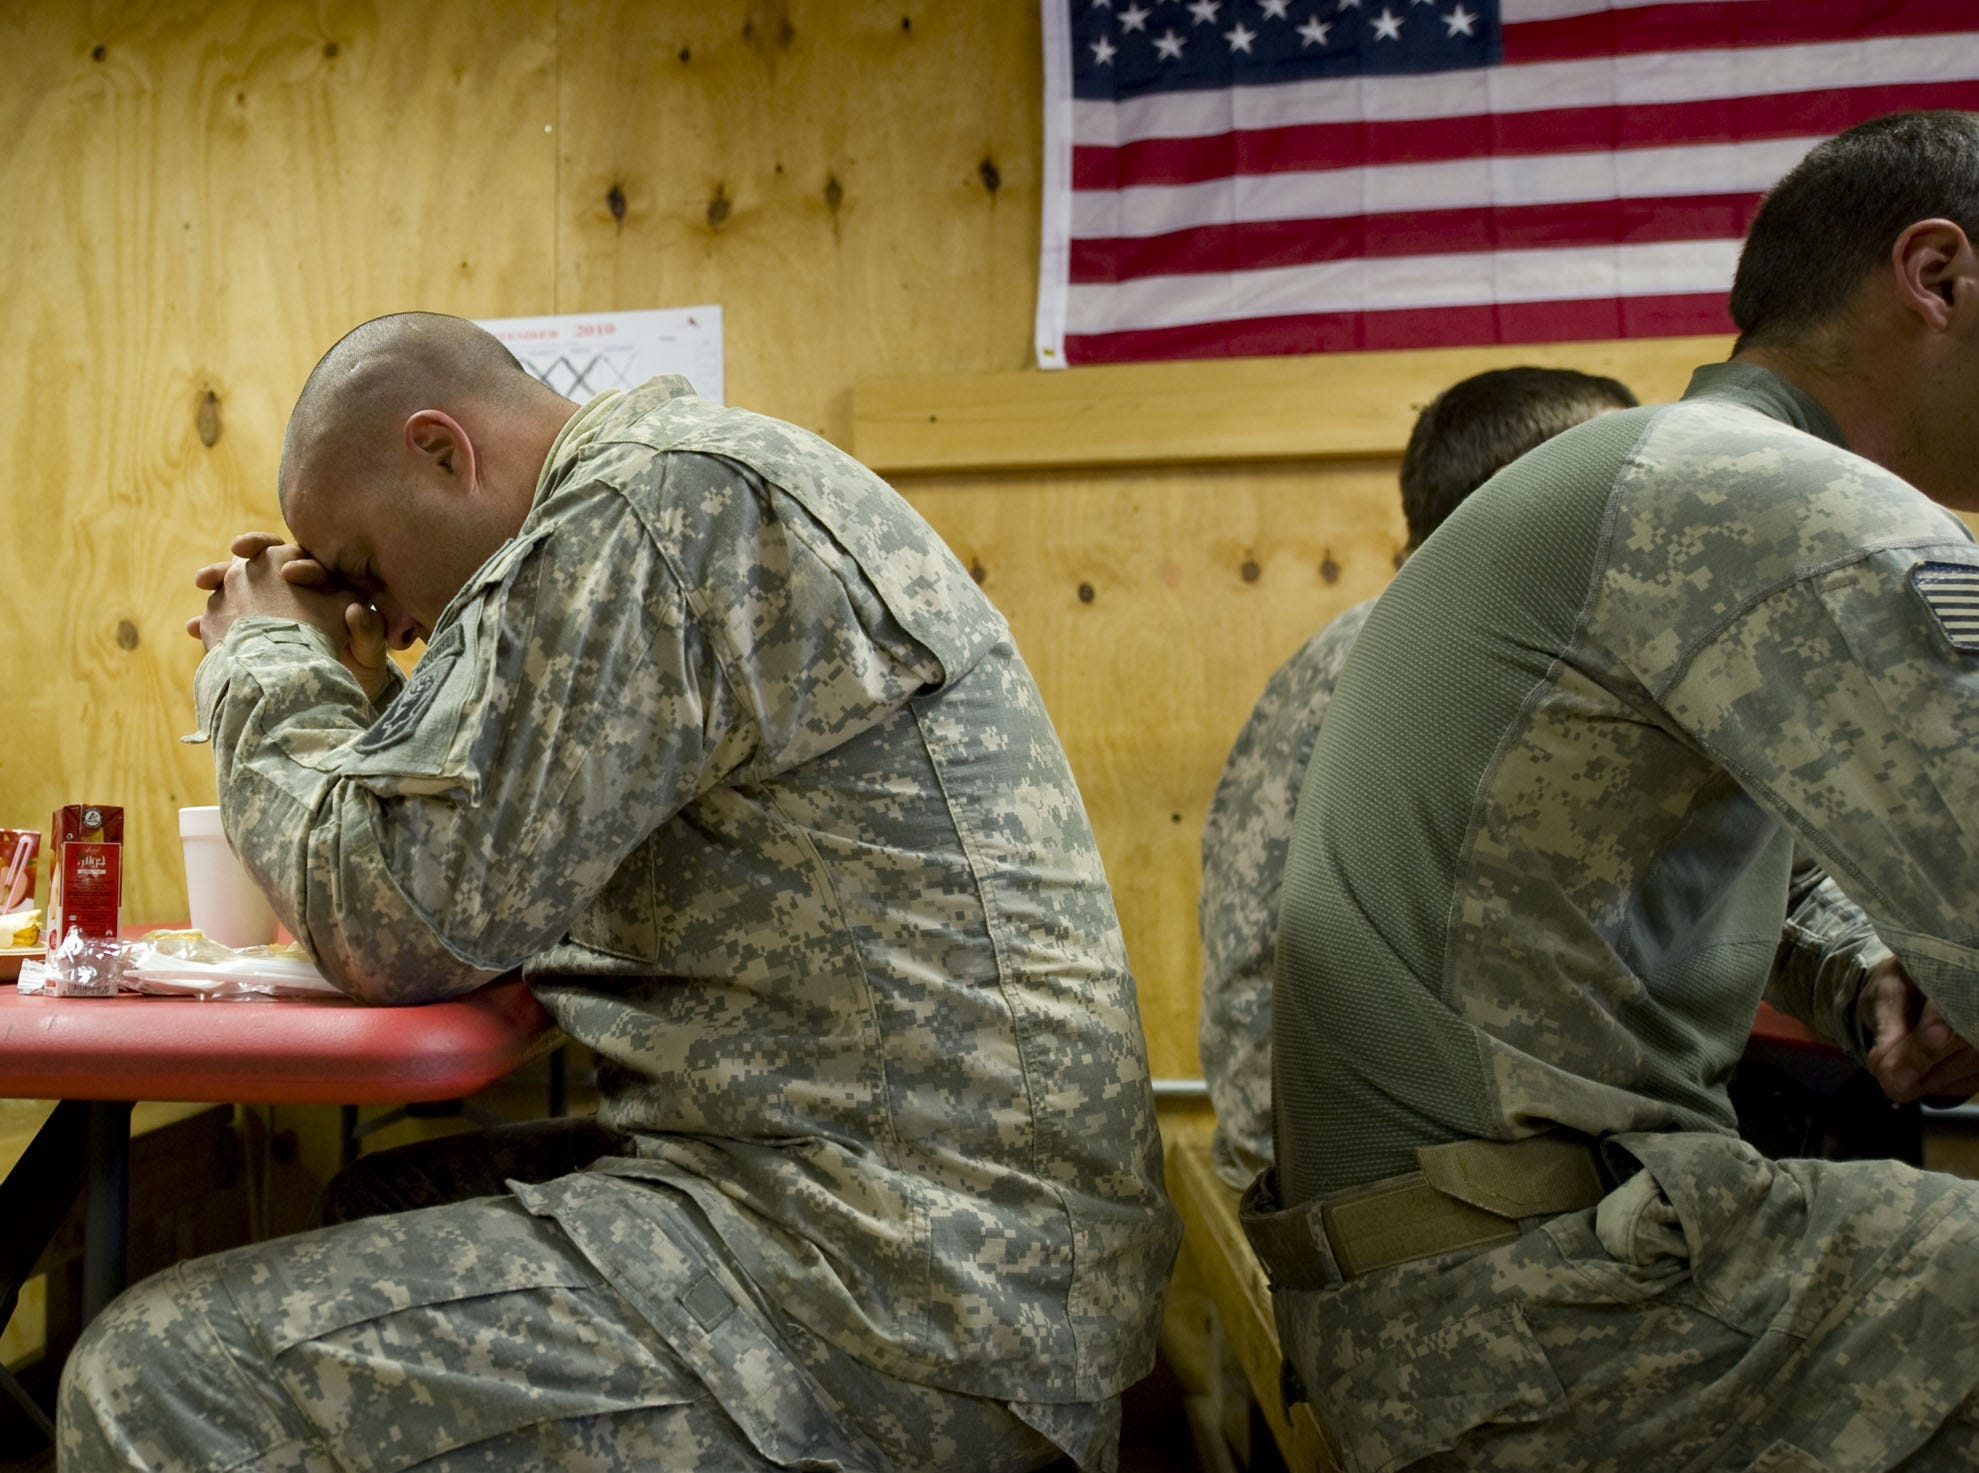 Sgt. Jesse Garcia of Sacramento, Calif., takes a moment for prayer before breakfast at Combat Outpost Herrera on Tuesday morning, September 21, 2010. A month earlier, two Vermont National Guard soldiers, Sgt. Tristan H. Southworth, 21, of Walden, Vt., and Sgt. Steven J. Deluzio, 25, of South Glastonbury, Conn., were killed by insurgents during a mission in a remote part of Paktia province just miles from the border with Pakistan.